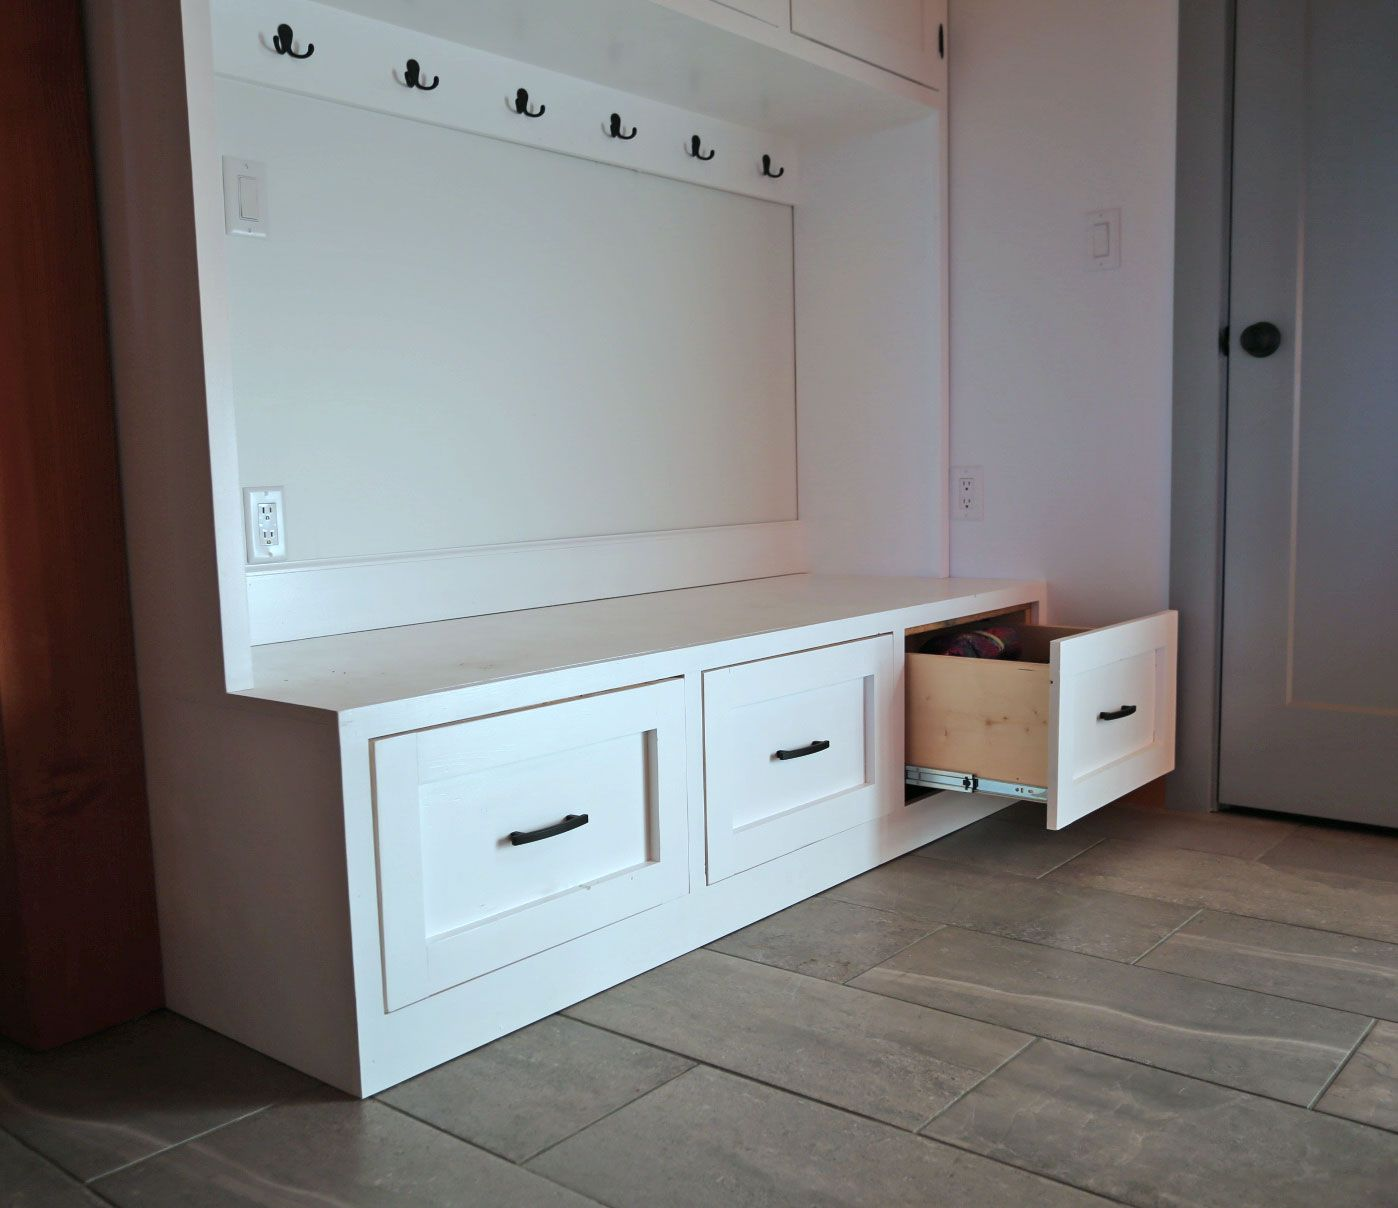 Mudroom Bench With Easy Drawers Diy Storage Bench Bench With